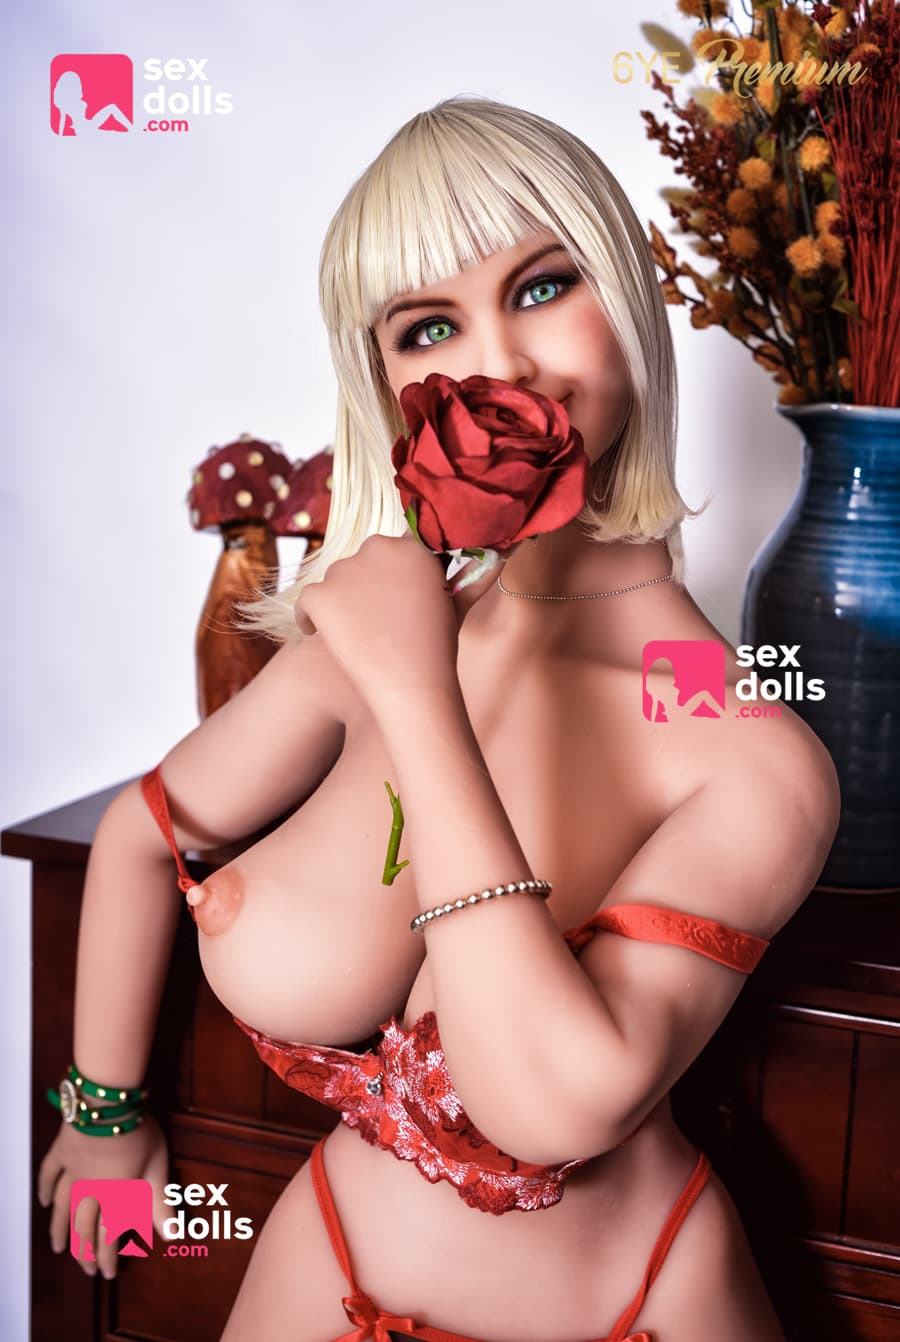 primrose 156cm blonde big boobs athletic tpe sex doll(2)